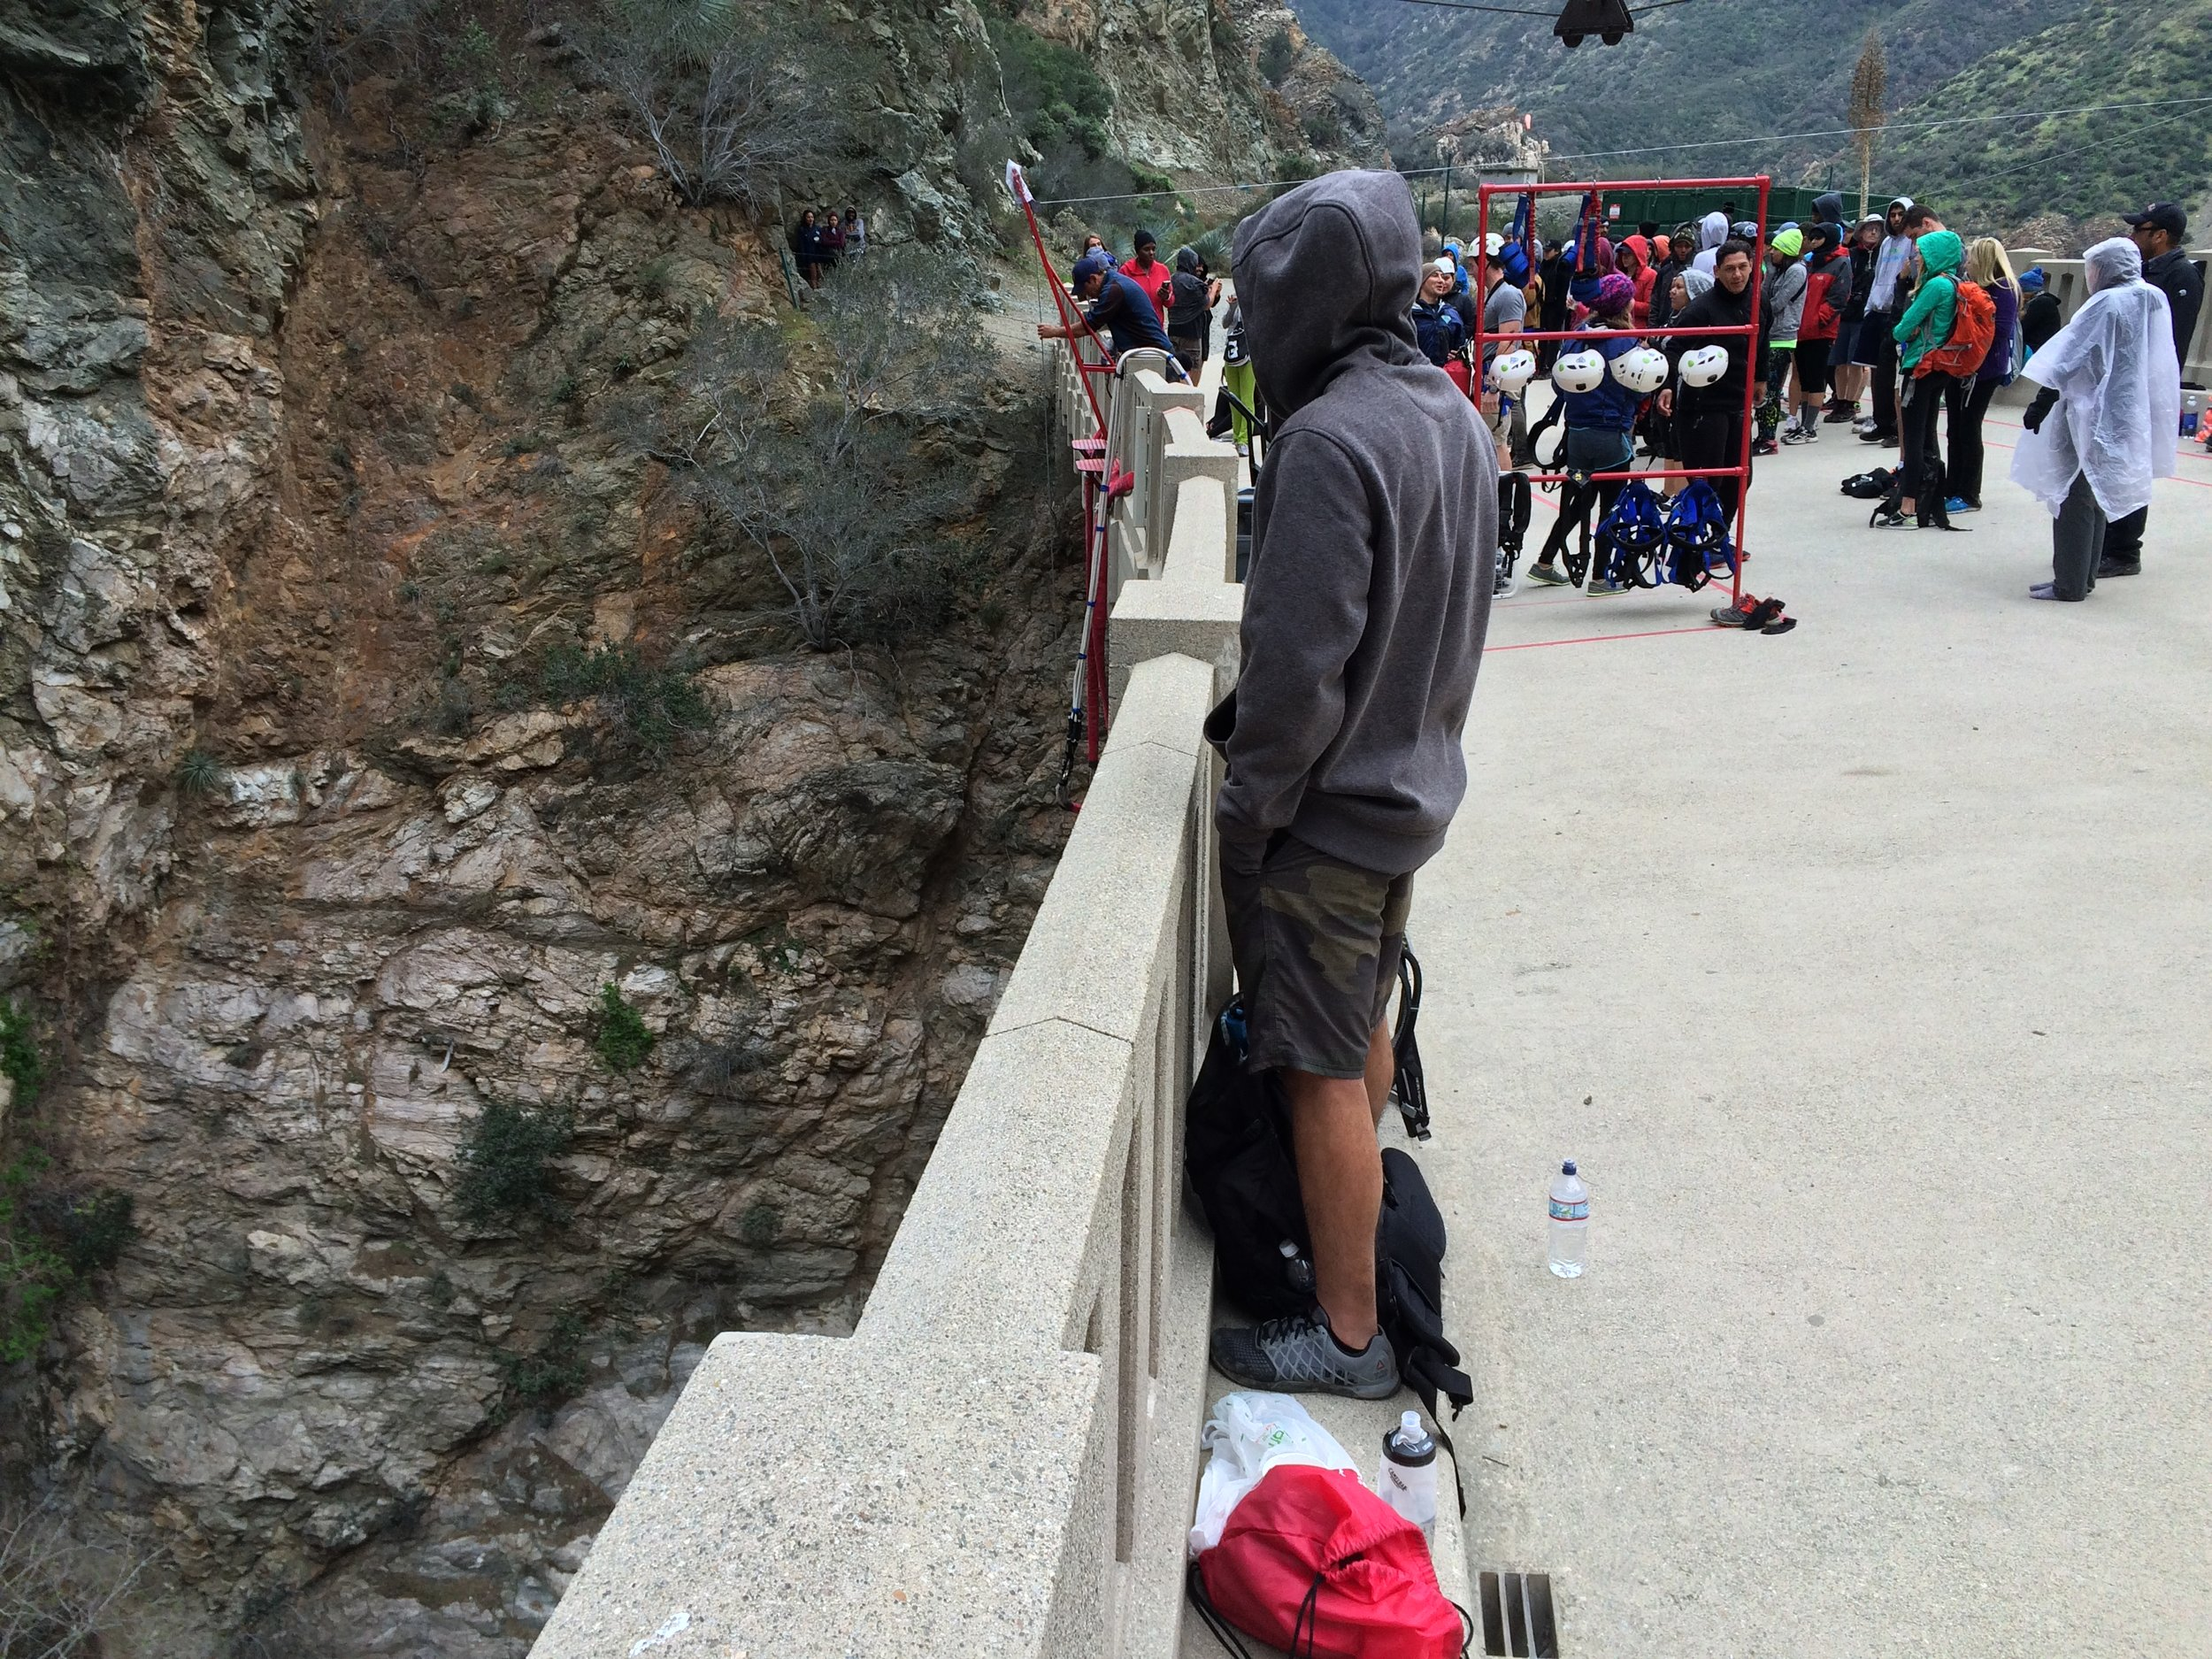 The Bridge to Nowhere is a spectacle as a historic structure, and as a spot to watch people risk life and limb.